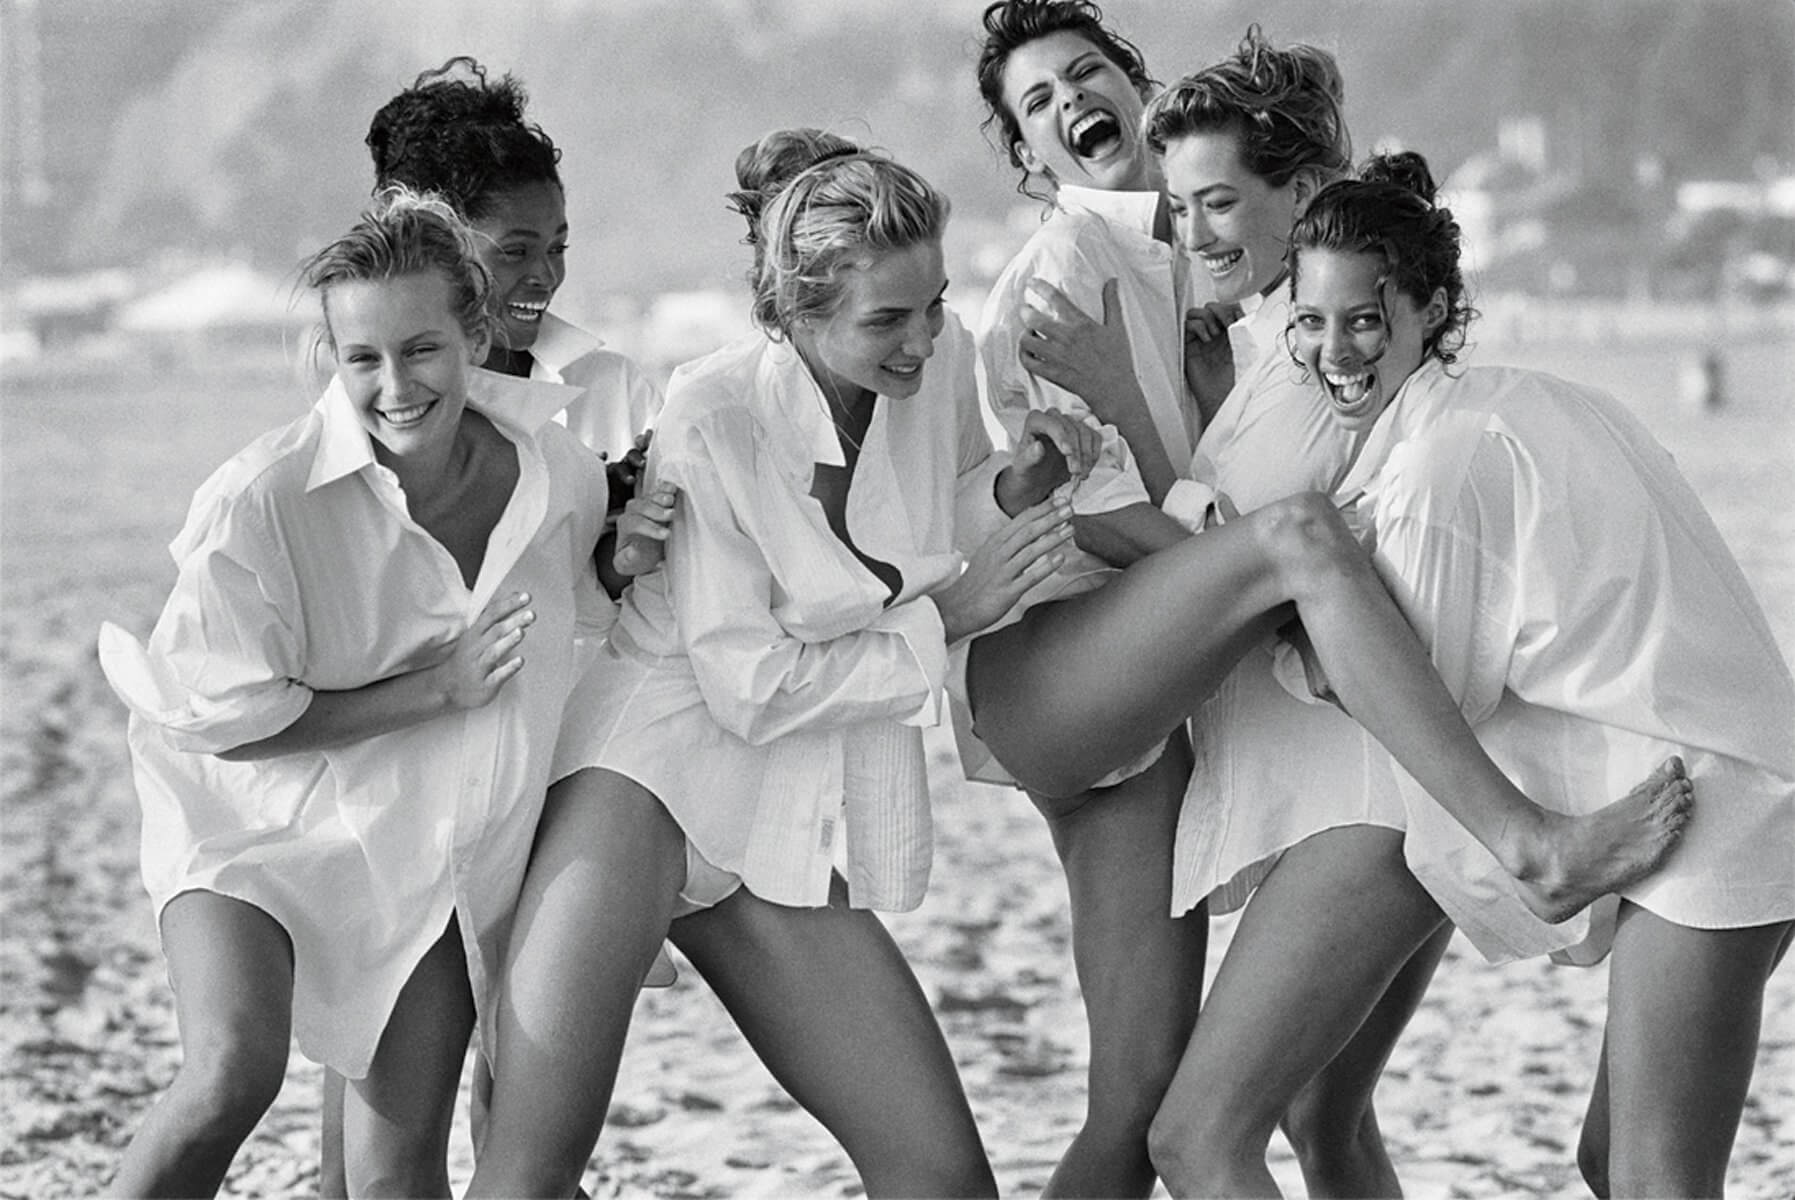 PETER LINDBERGH